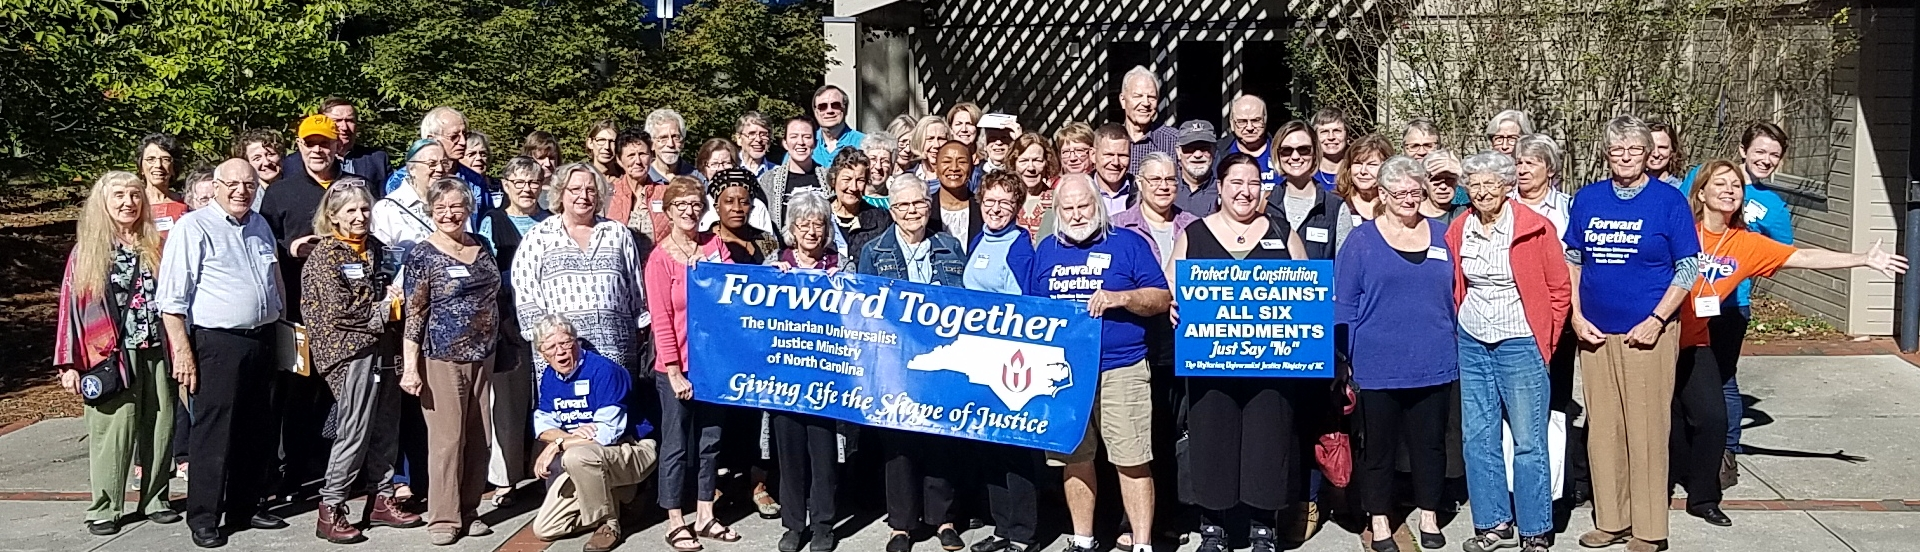 Forward Together Annual Gathering